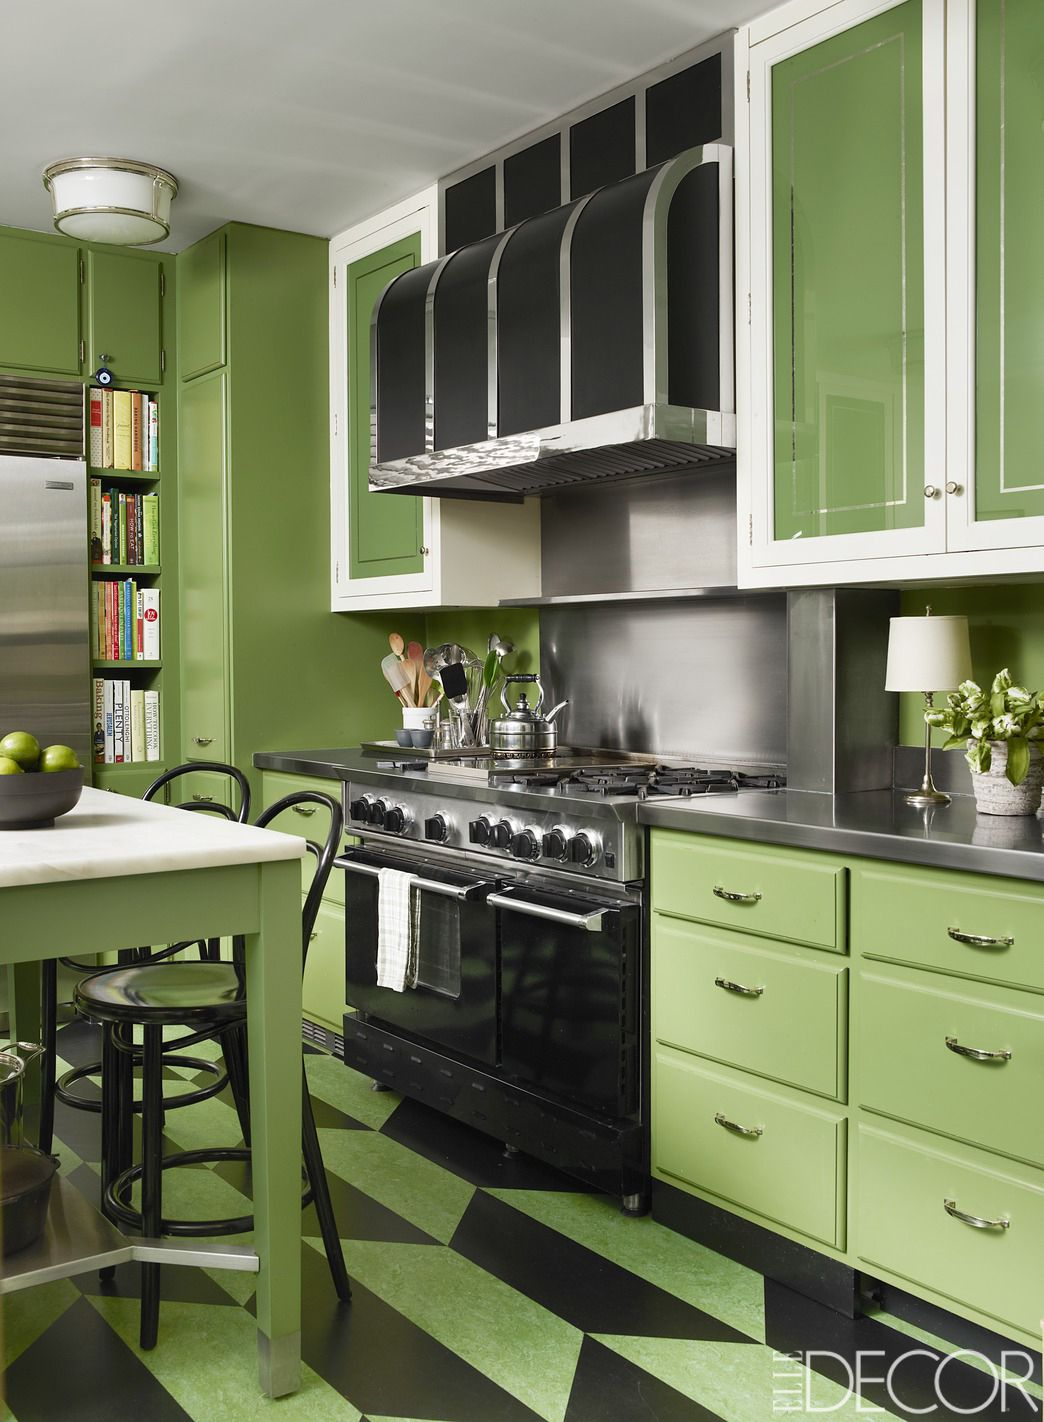 How To Redesign A Kitchen 50 small kitchen design ideas - decorating tiny kitchens